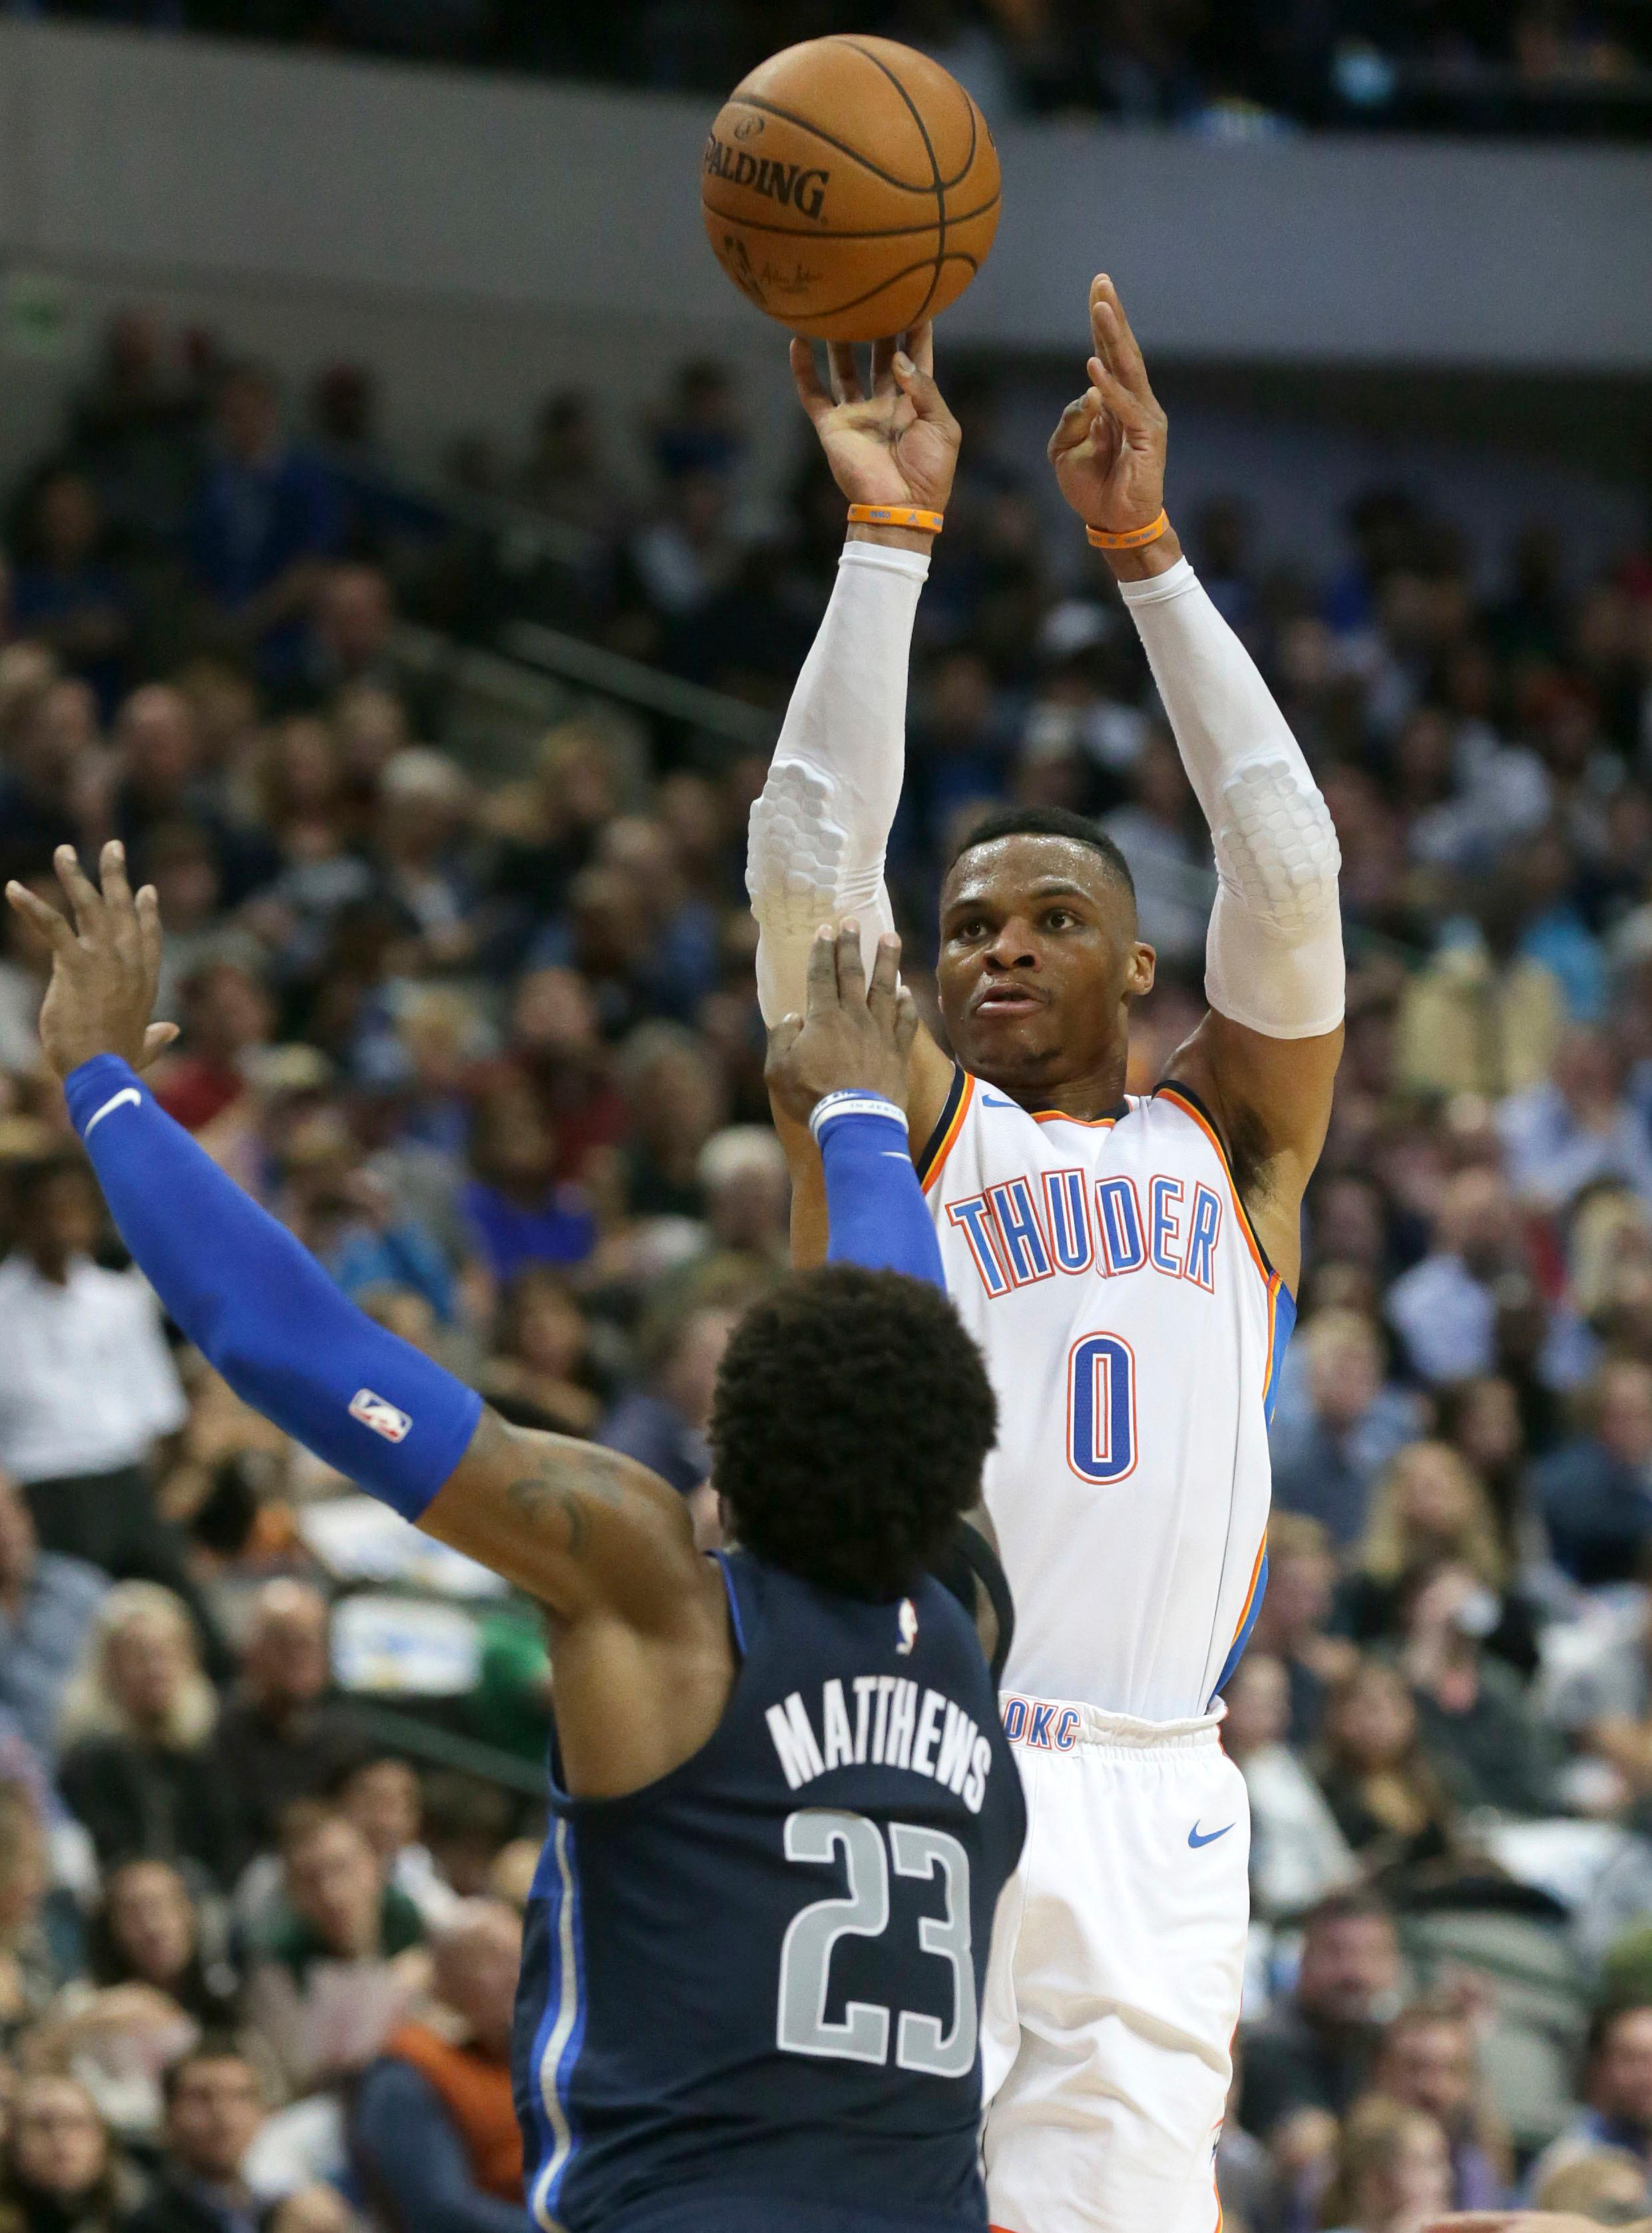 Oklahoma City Thunder guard Russell Westbrook (0) shoots against Dallas Mavericks guard Wesley Matthews (23) during the first half of an NBA basketball game in Dallas, Saturday, Nov. 25, 2017. (AP Photo/LM Otero)